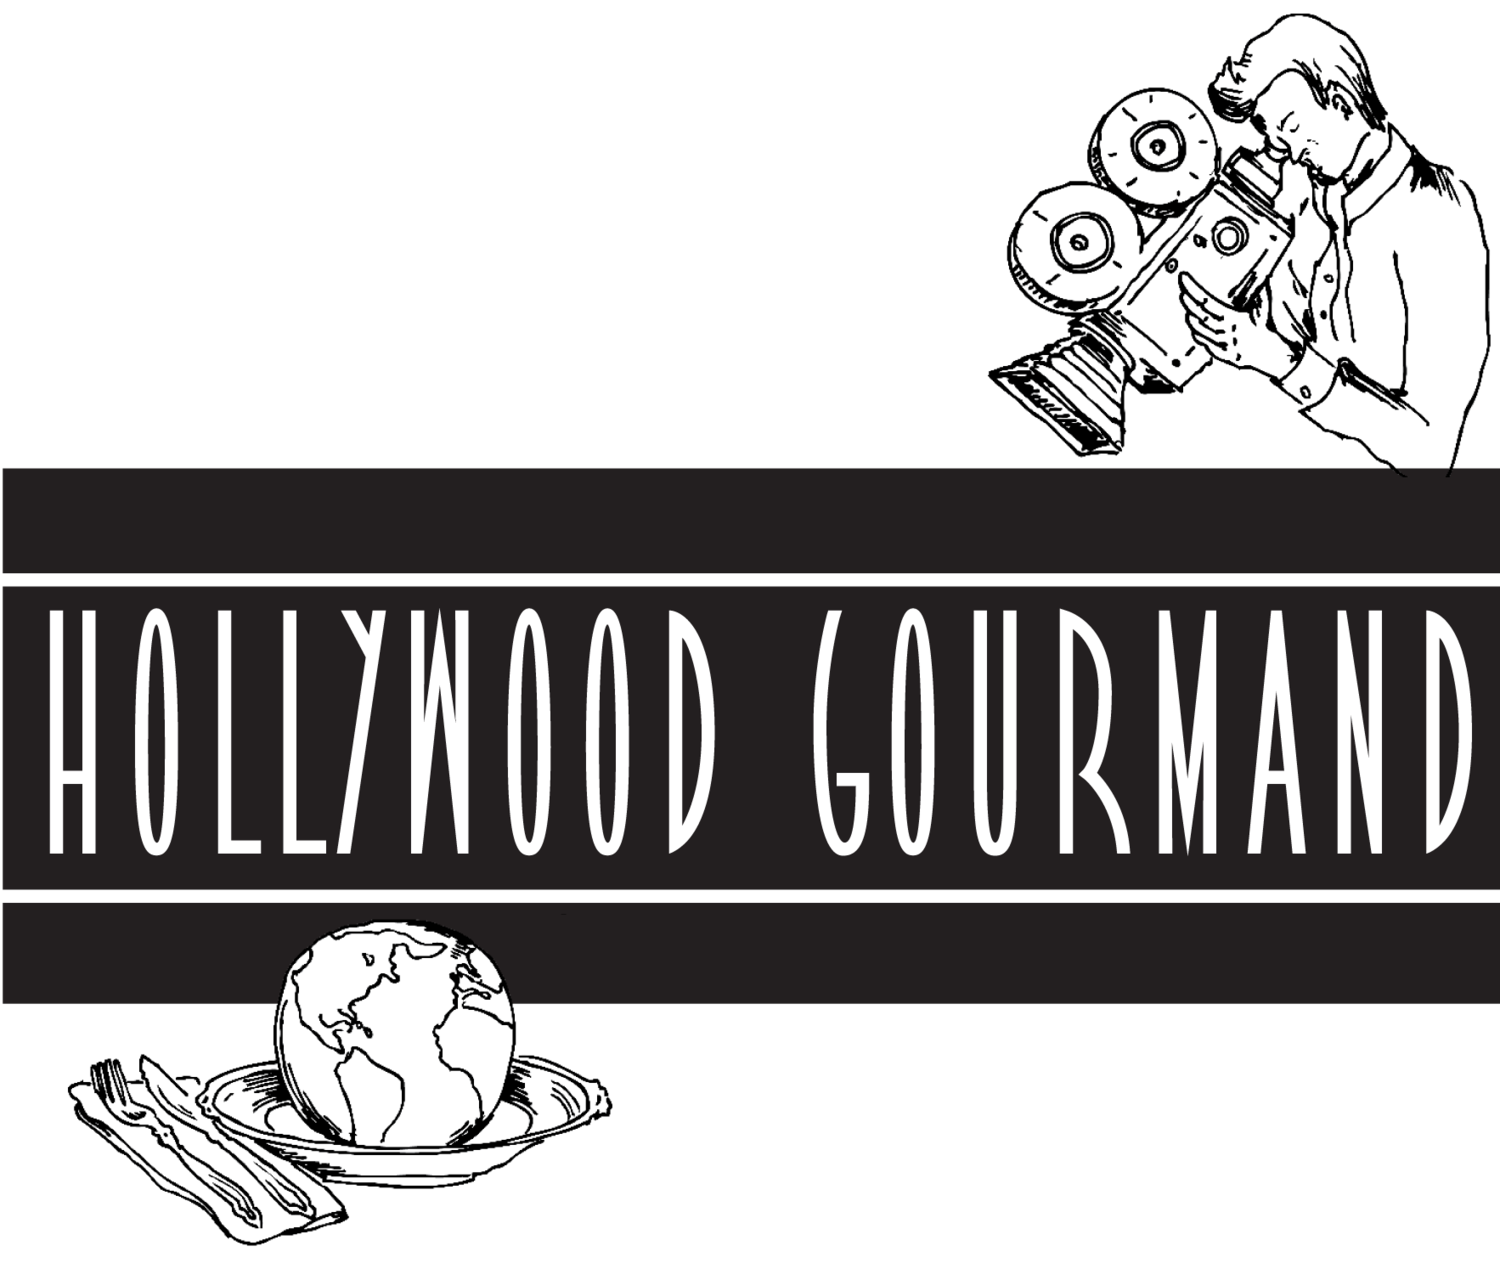 Hollywood Gourmand